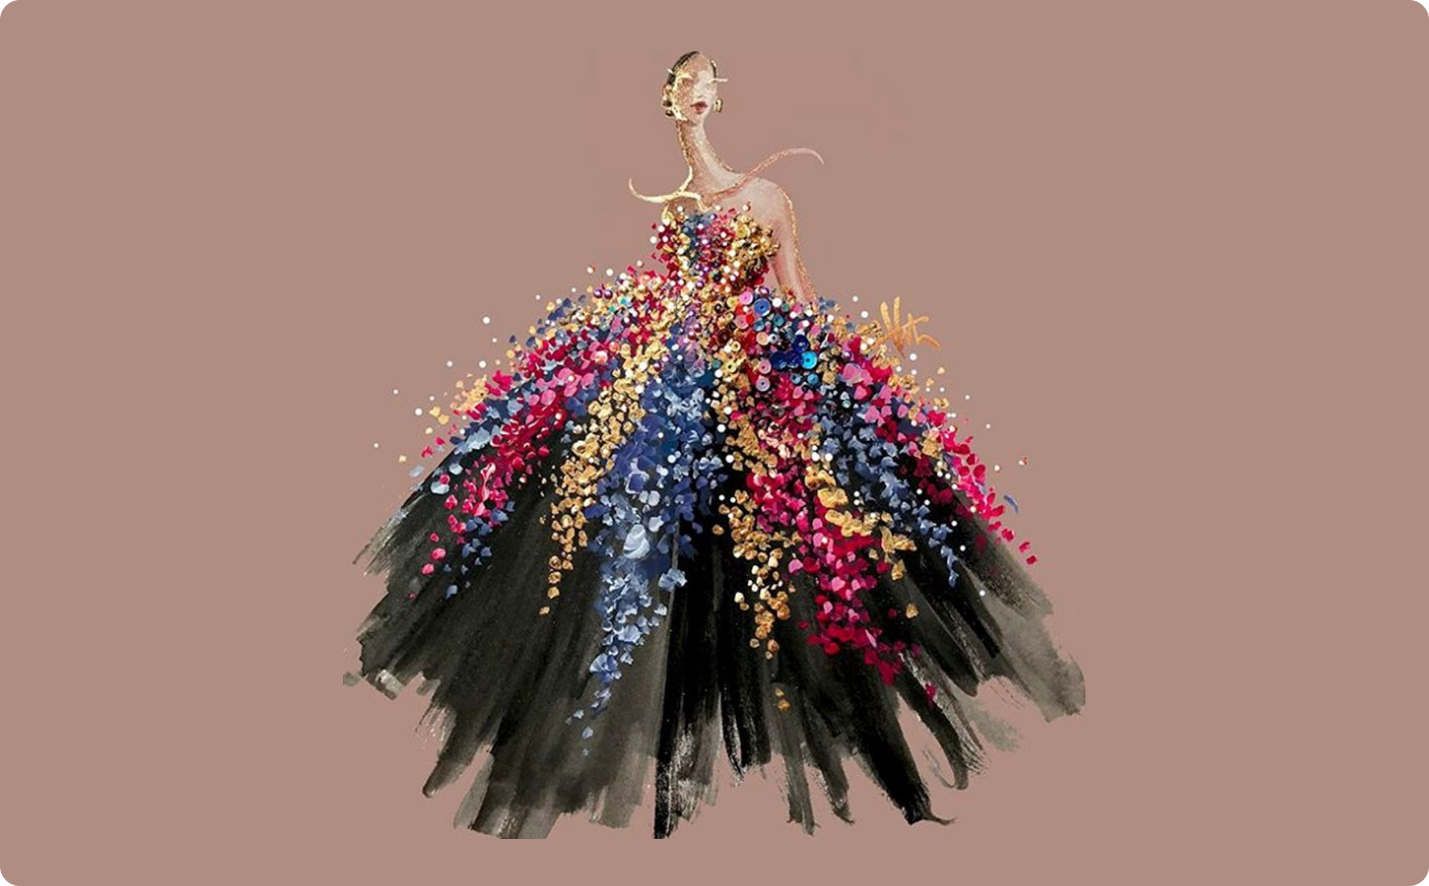 Image featuring a woman's dress representing fashion illustrations.